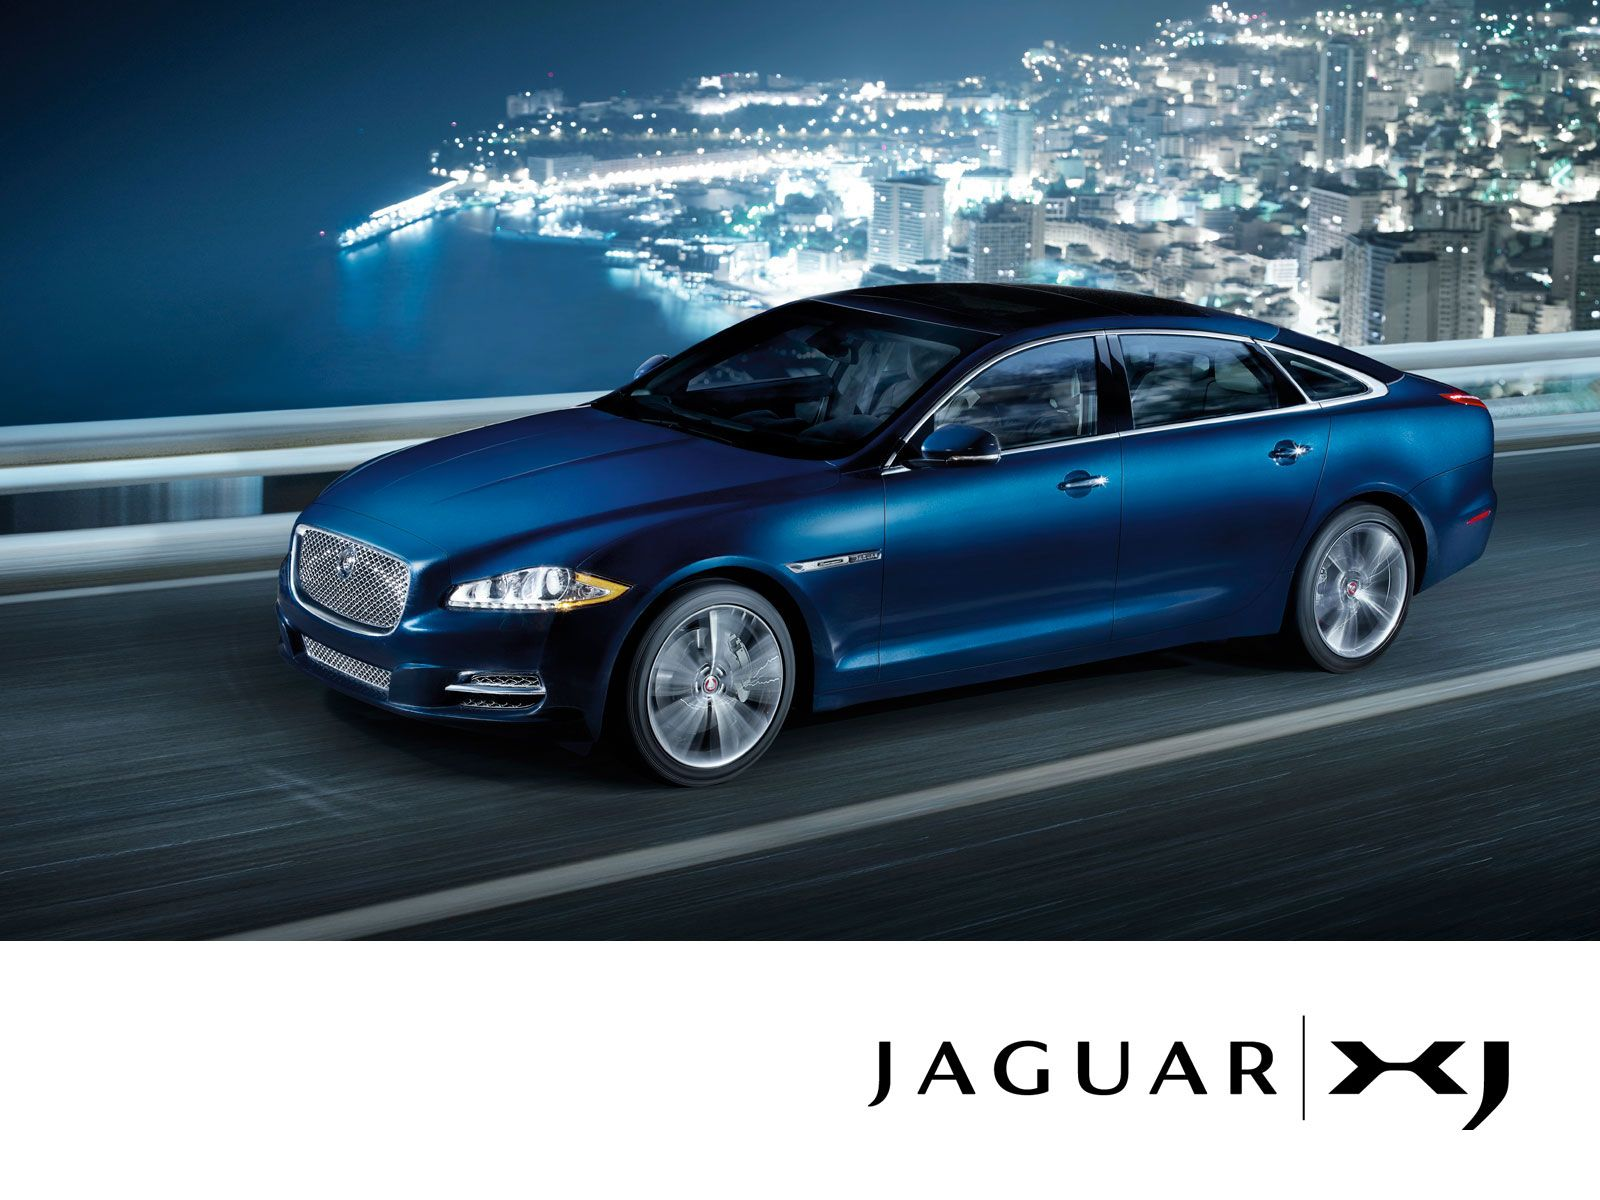 Jaguar Xj Blue Jaguar Xj Luxury Cars Jaguar Car